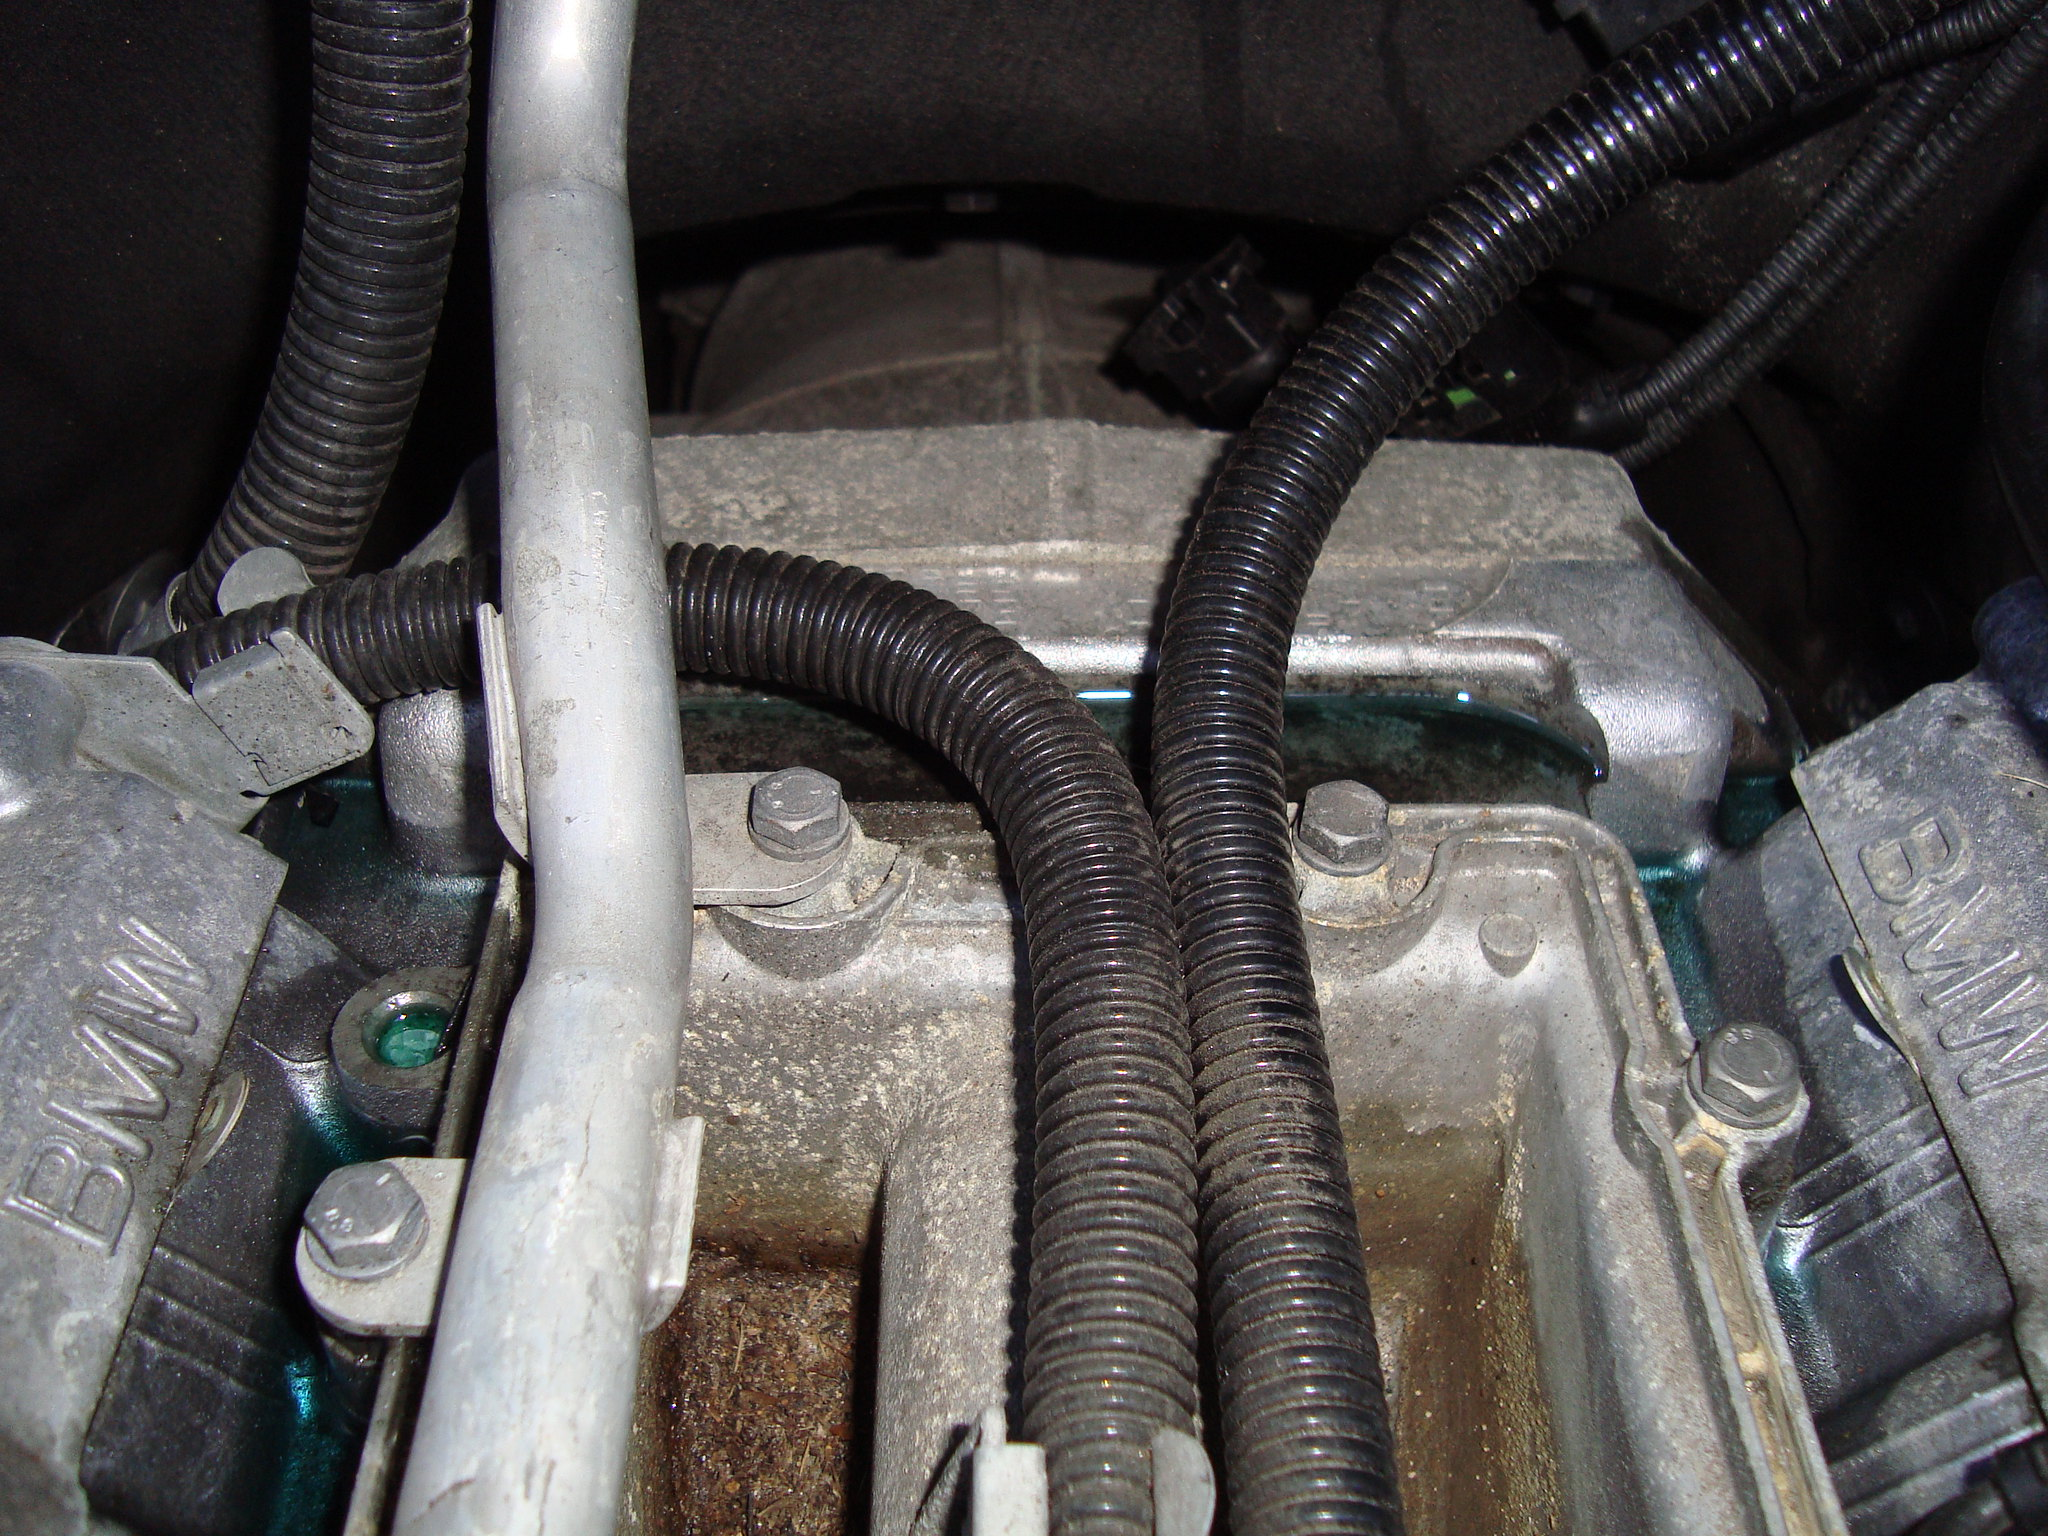 Diy Coolant Exchange Pipe Valley Pan Replacement E70 N62 48l Nissan Engine Diagram In Image Bellow You Can Notice That Has Leaked Out From The Due To Gasket Leak